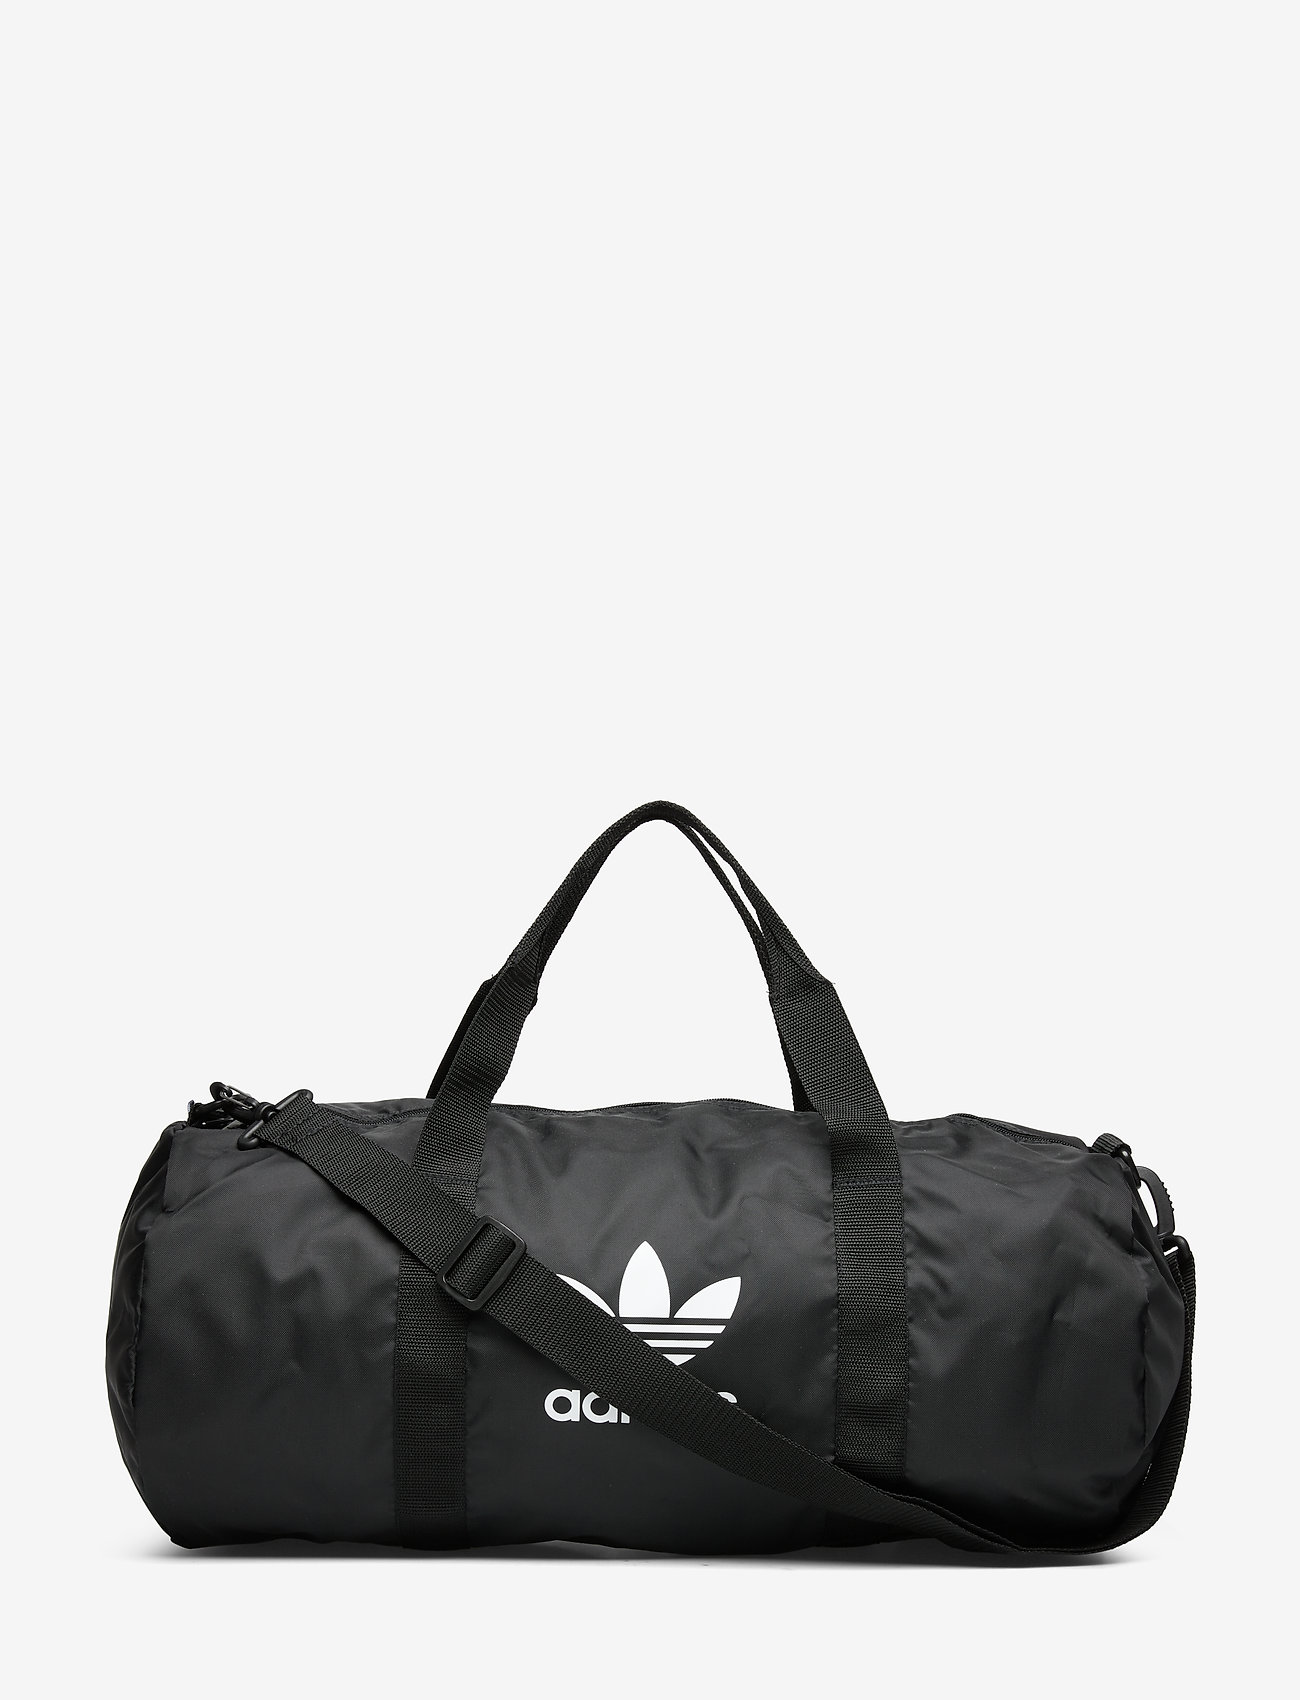 adidas Originals - AC DUFFLE - gender neutral - black - 0